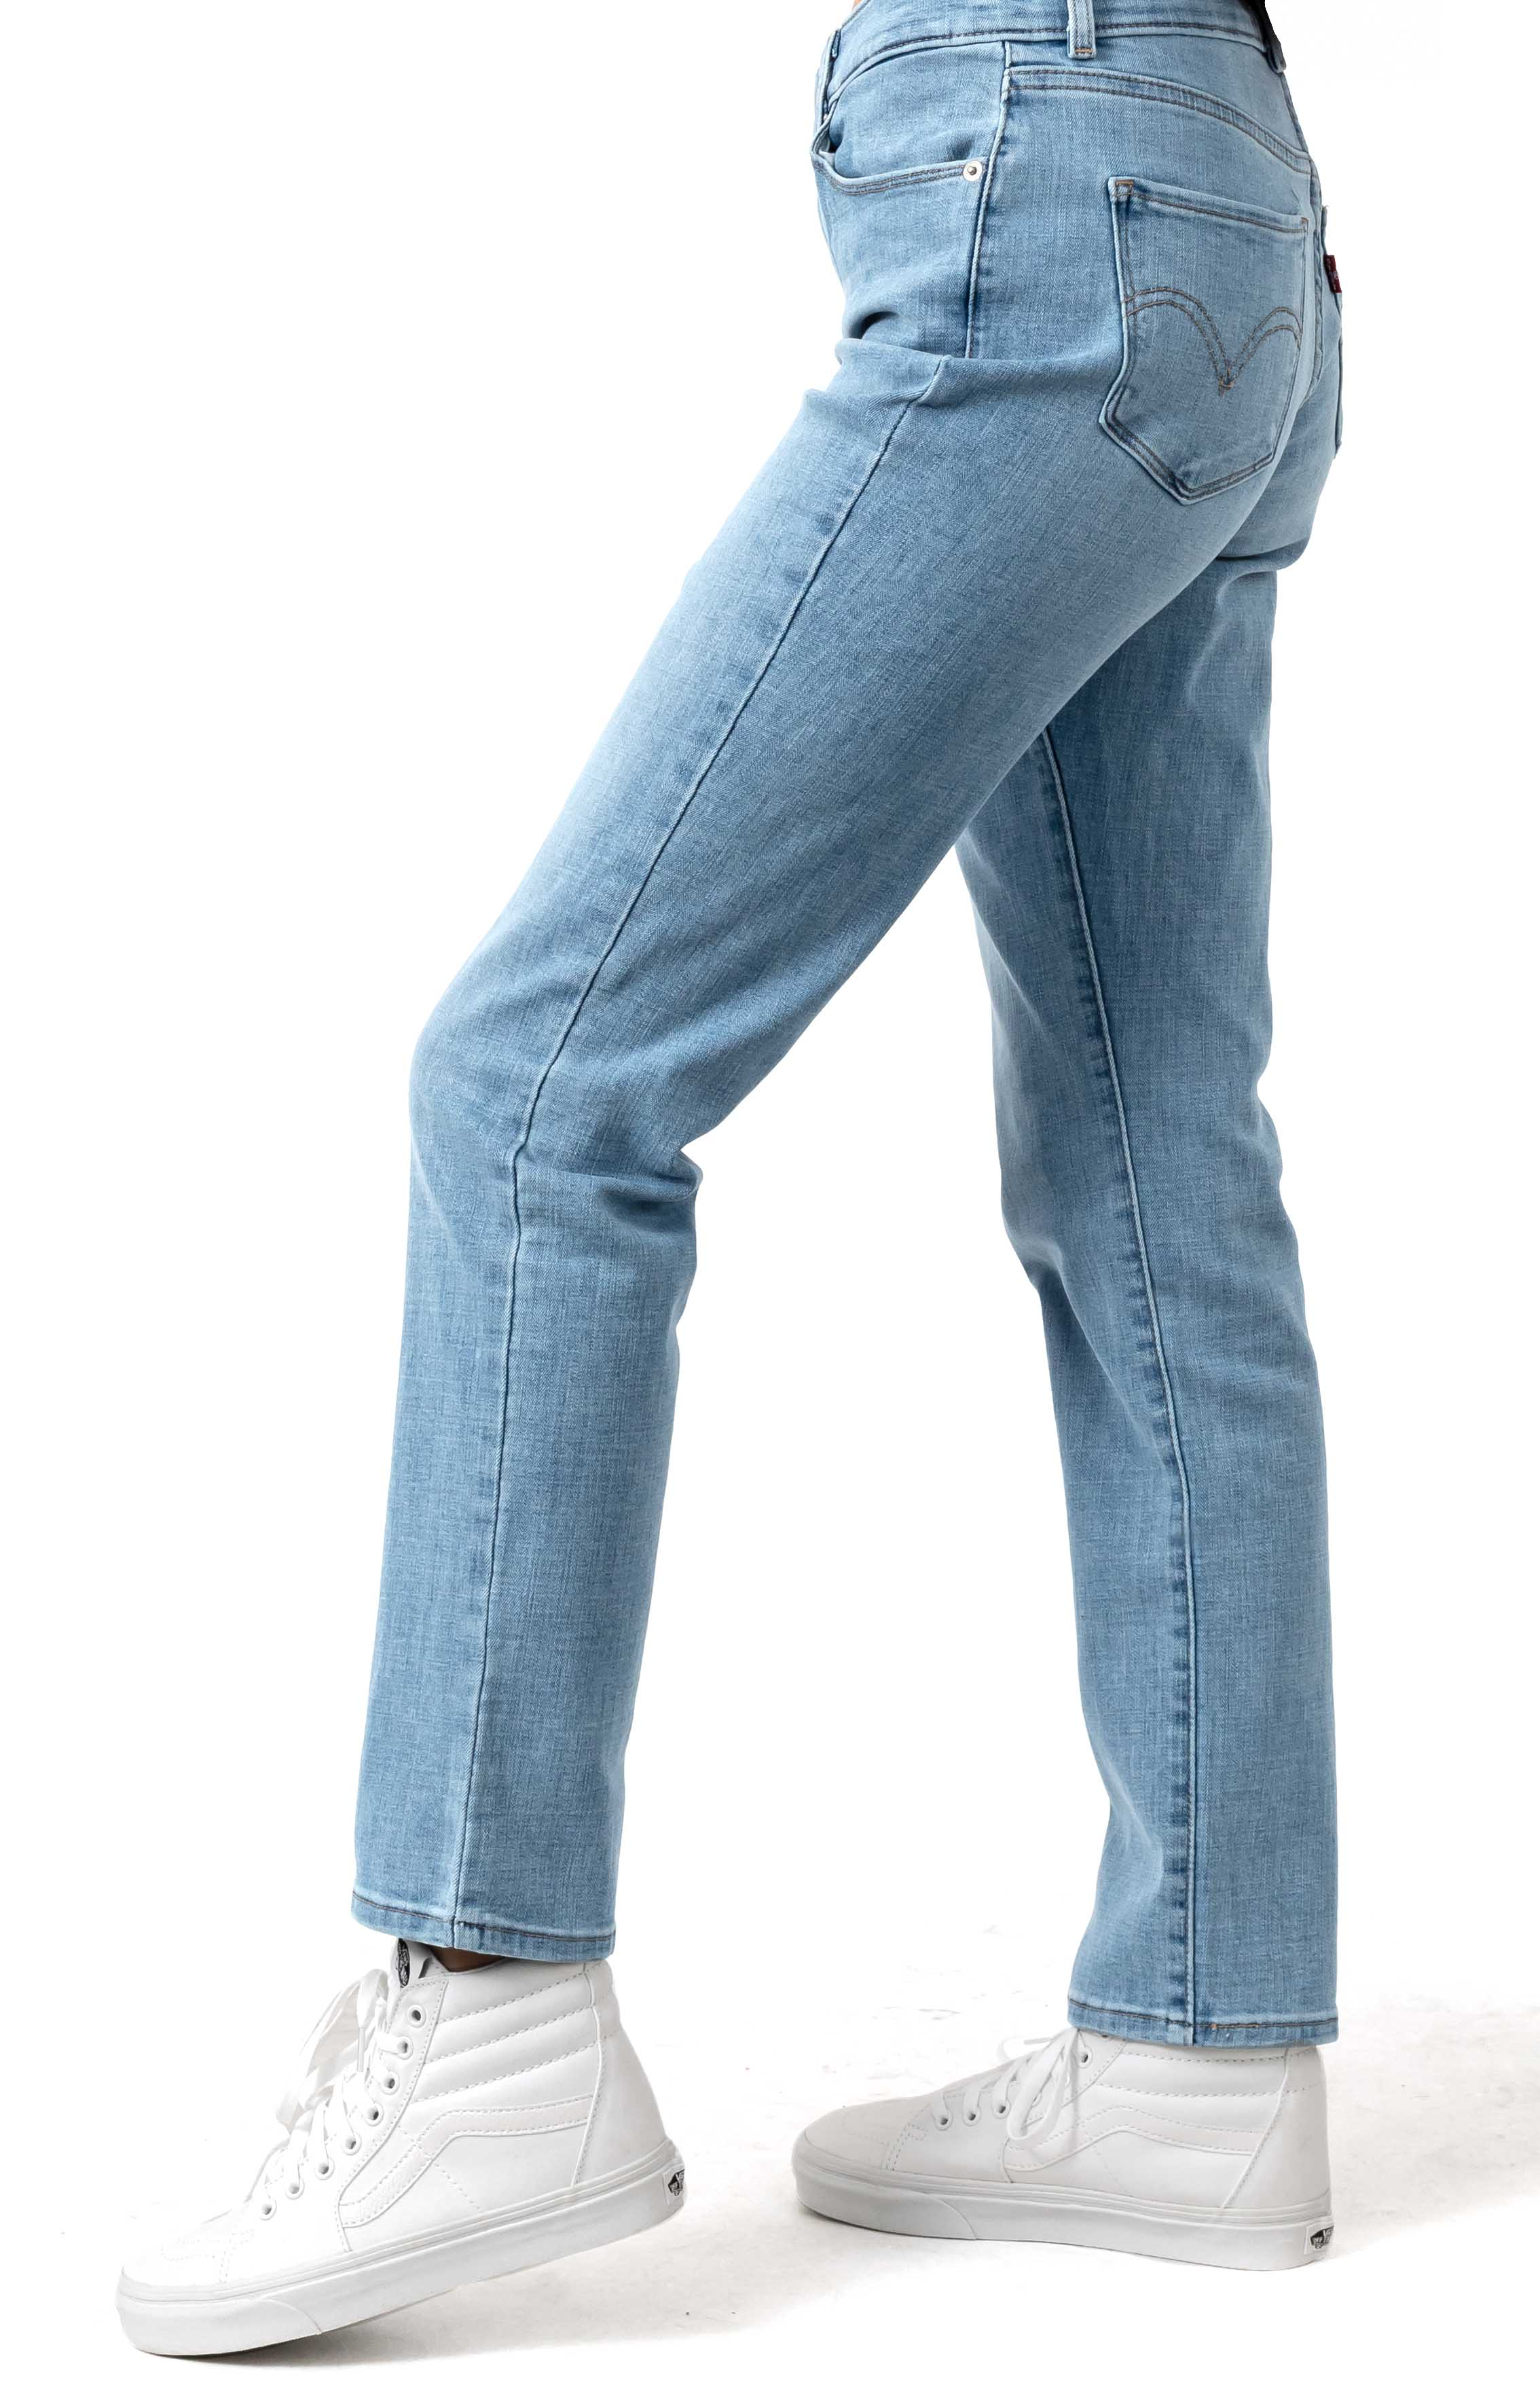 Classic Straight Slate Jeans - Oahu Morning Dew